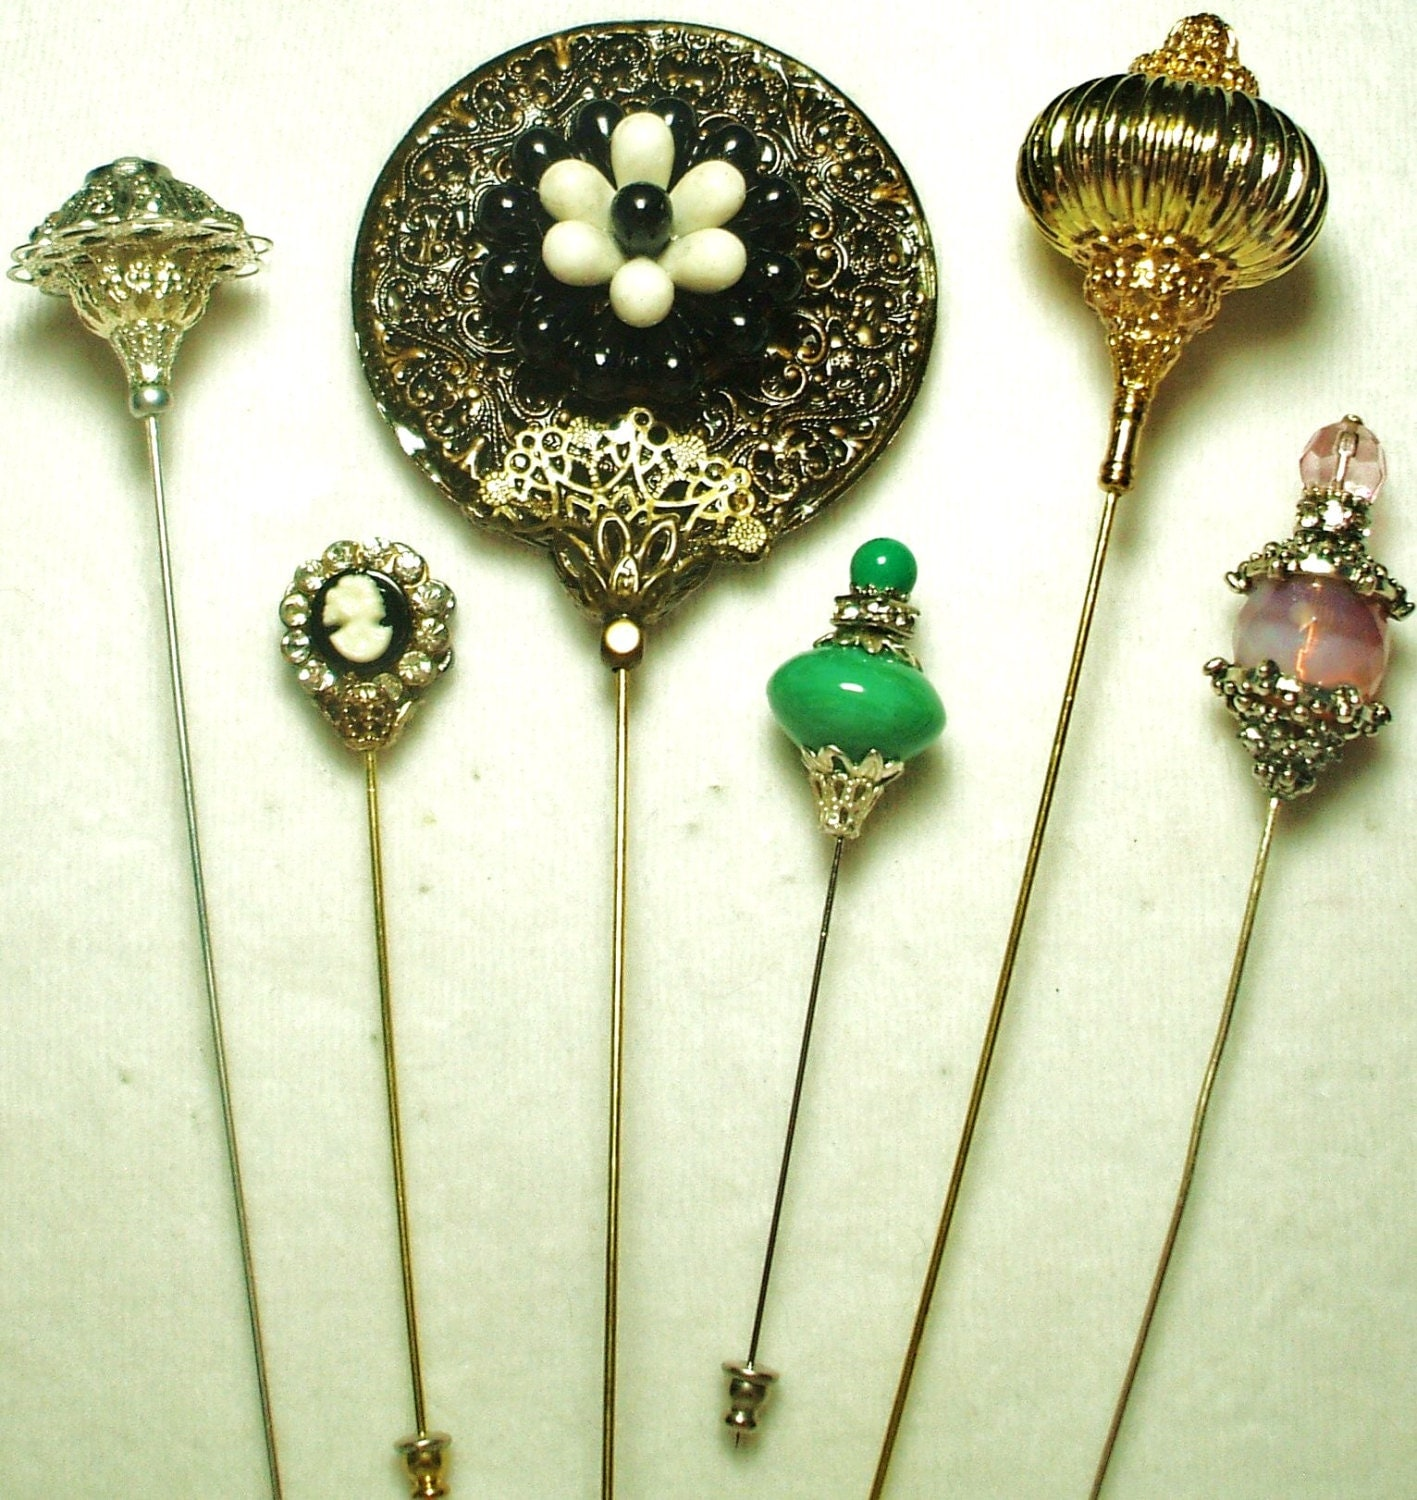 Victorian Hat Pins For The Old West Reenactor Or Steampunk: 6 Antique Style Victorian Hat Pins With Vintage And Antique